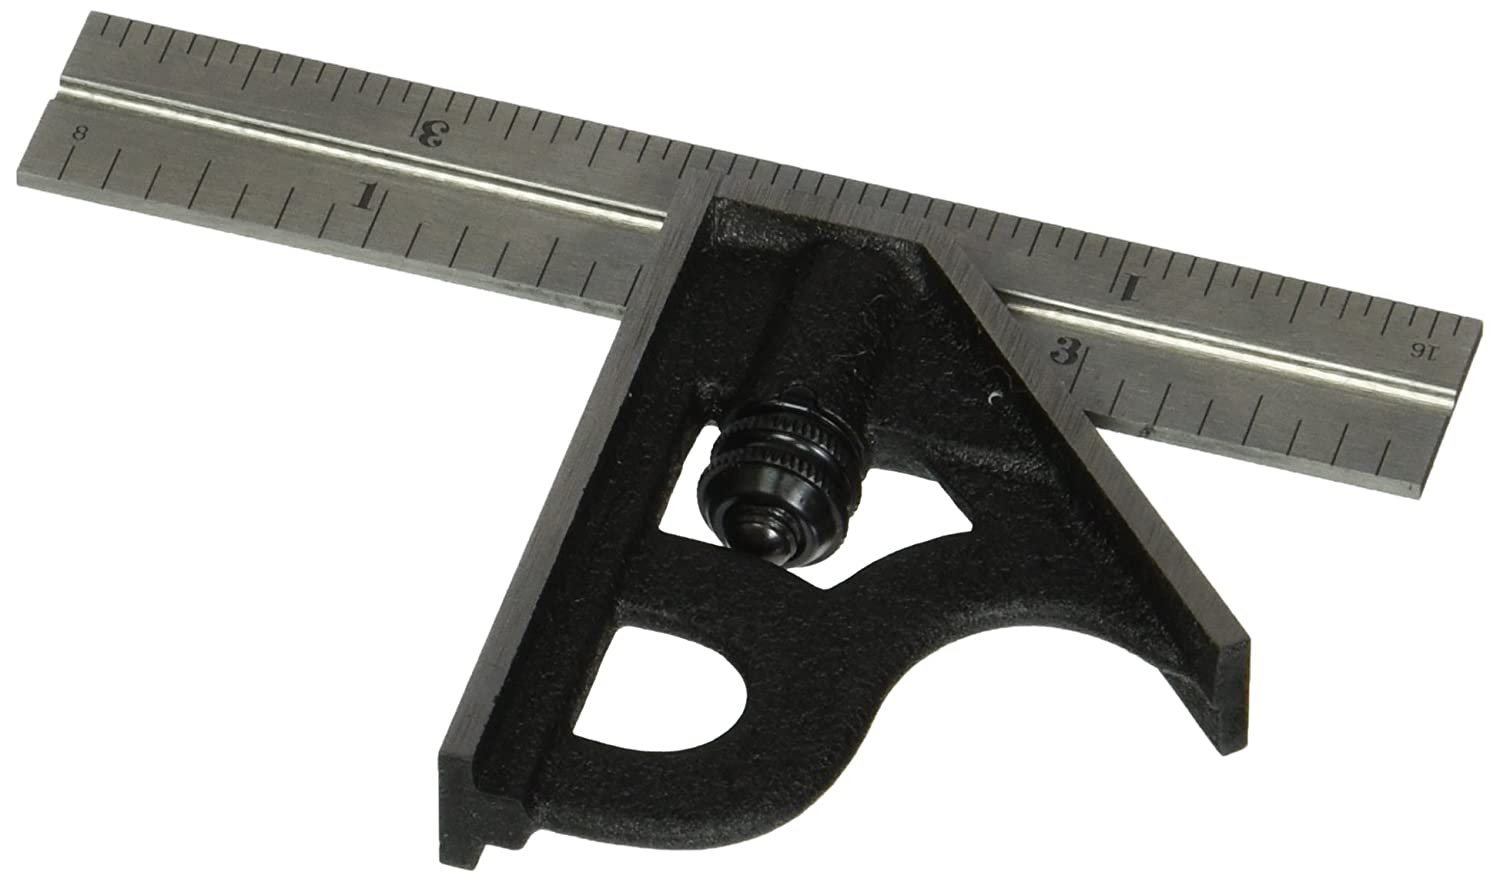 Starrett 11H 4 4R Combination Square with Cast Iron Head and Black Wrinkle Finish